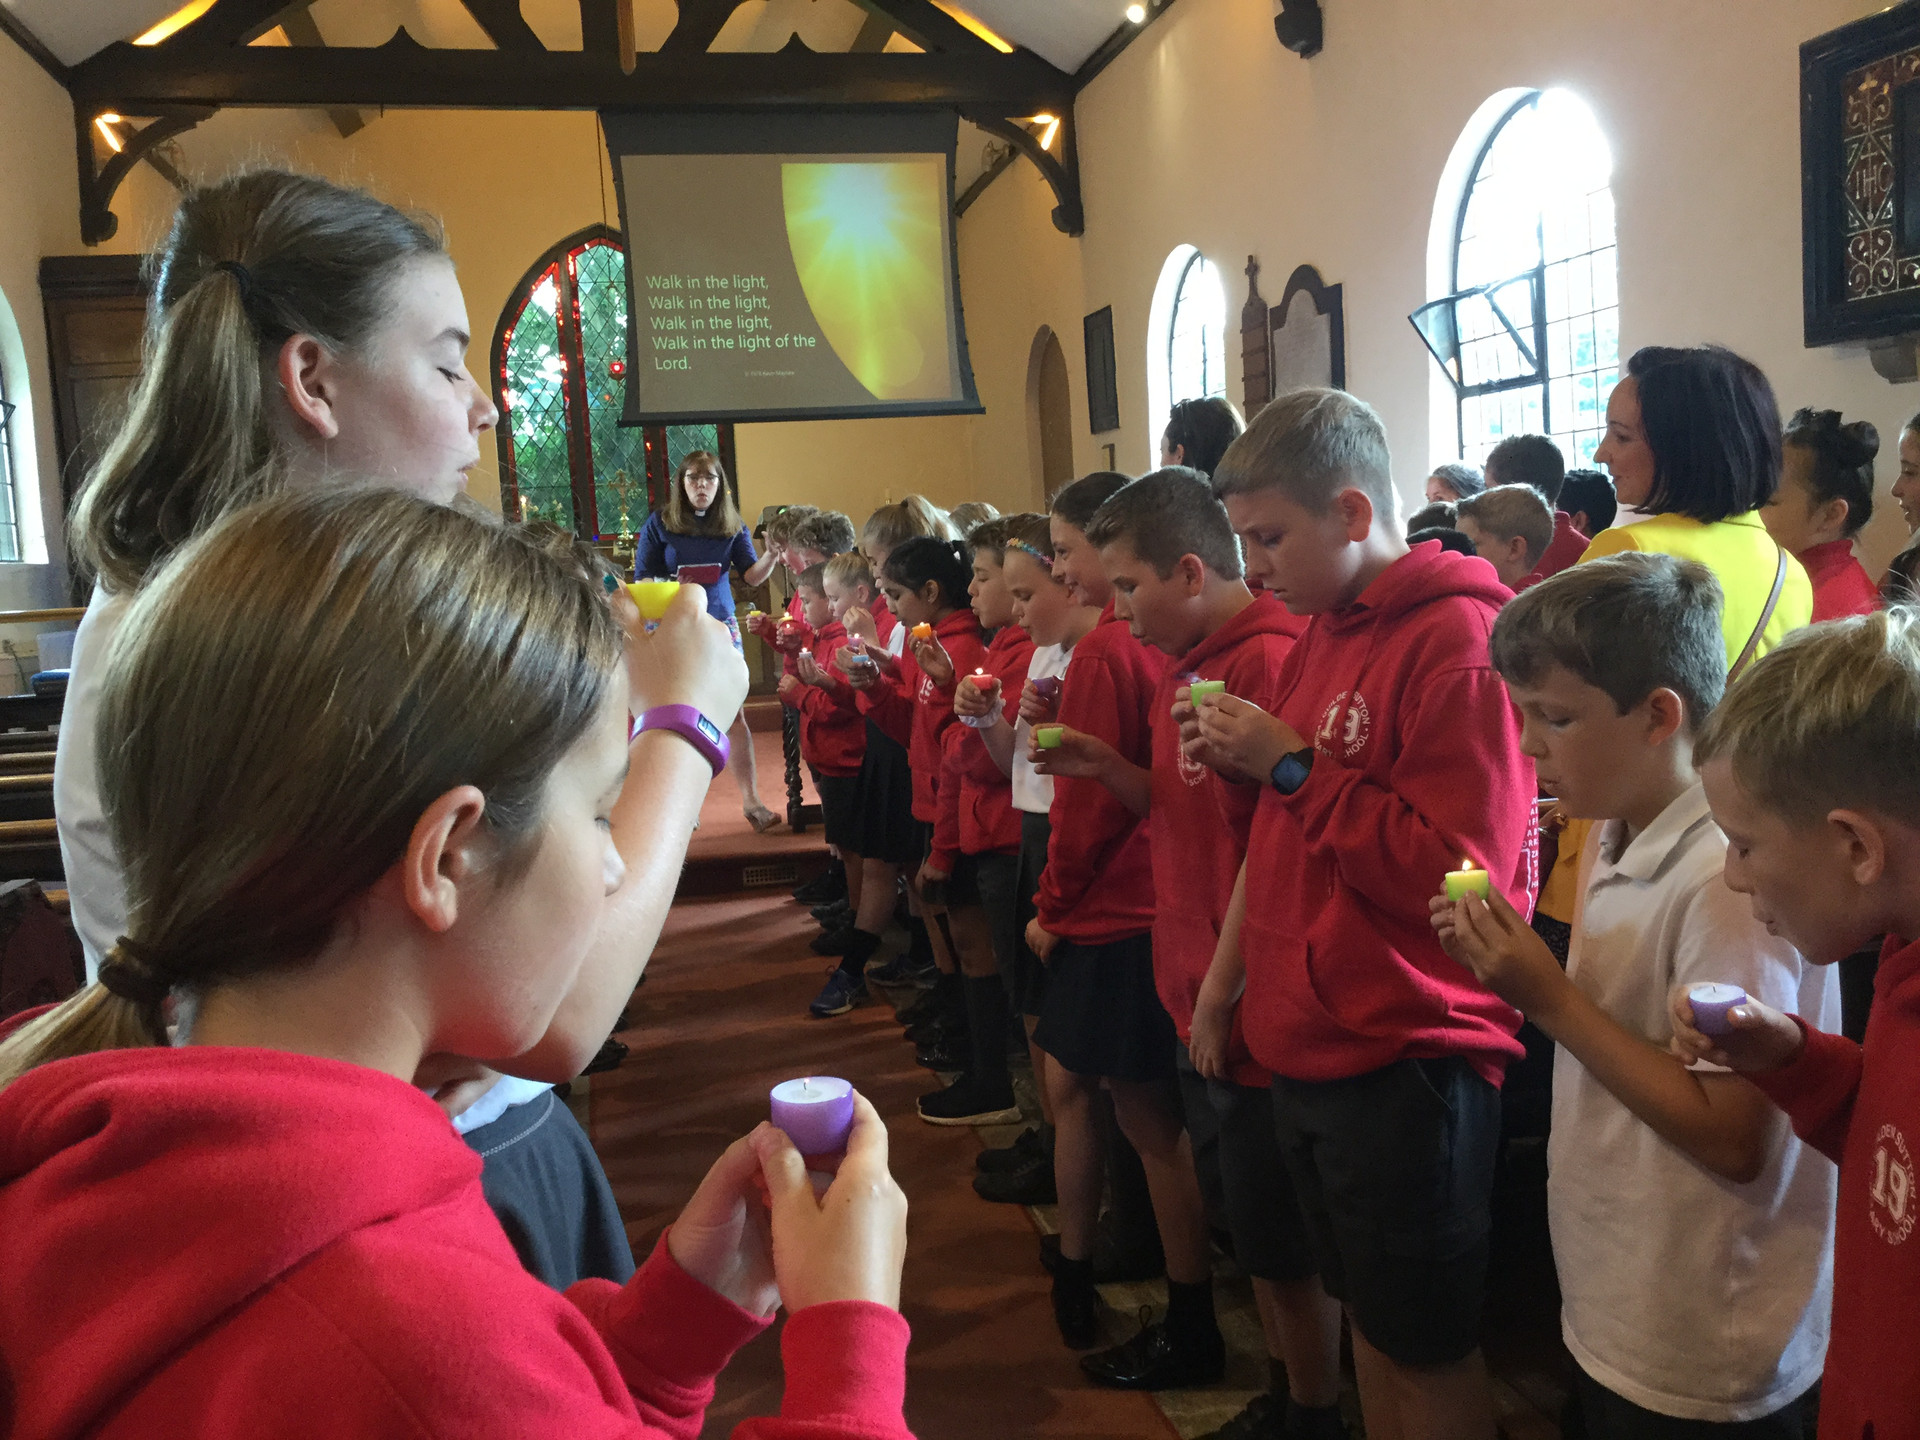 Sending Year 6 to walk and shine with the light of Christ as they move on